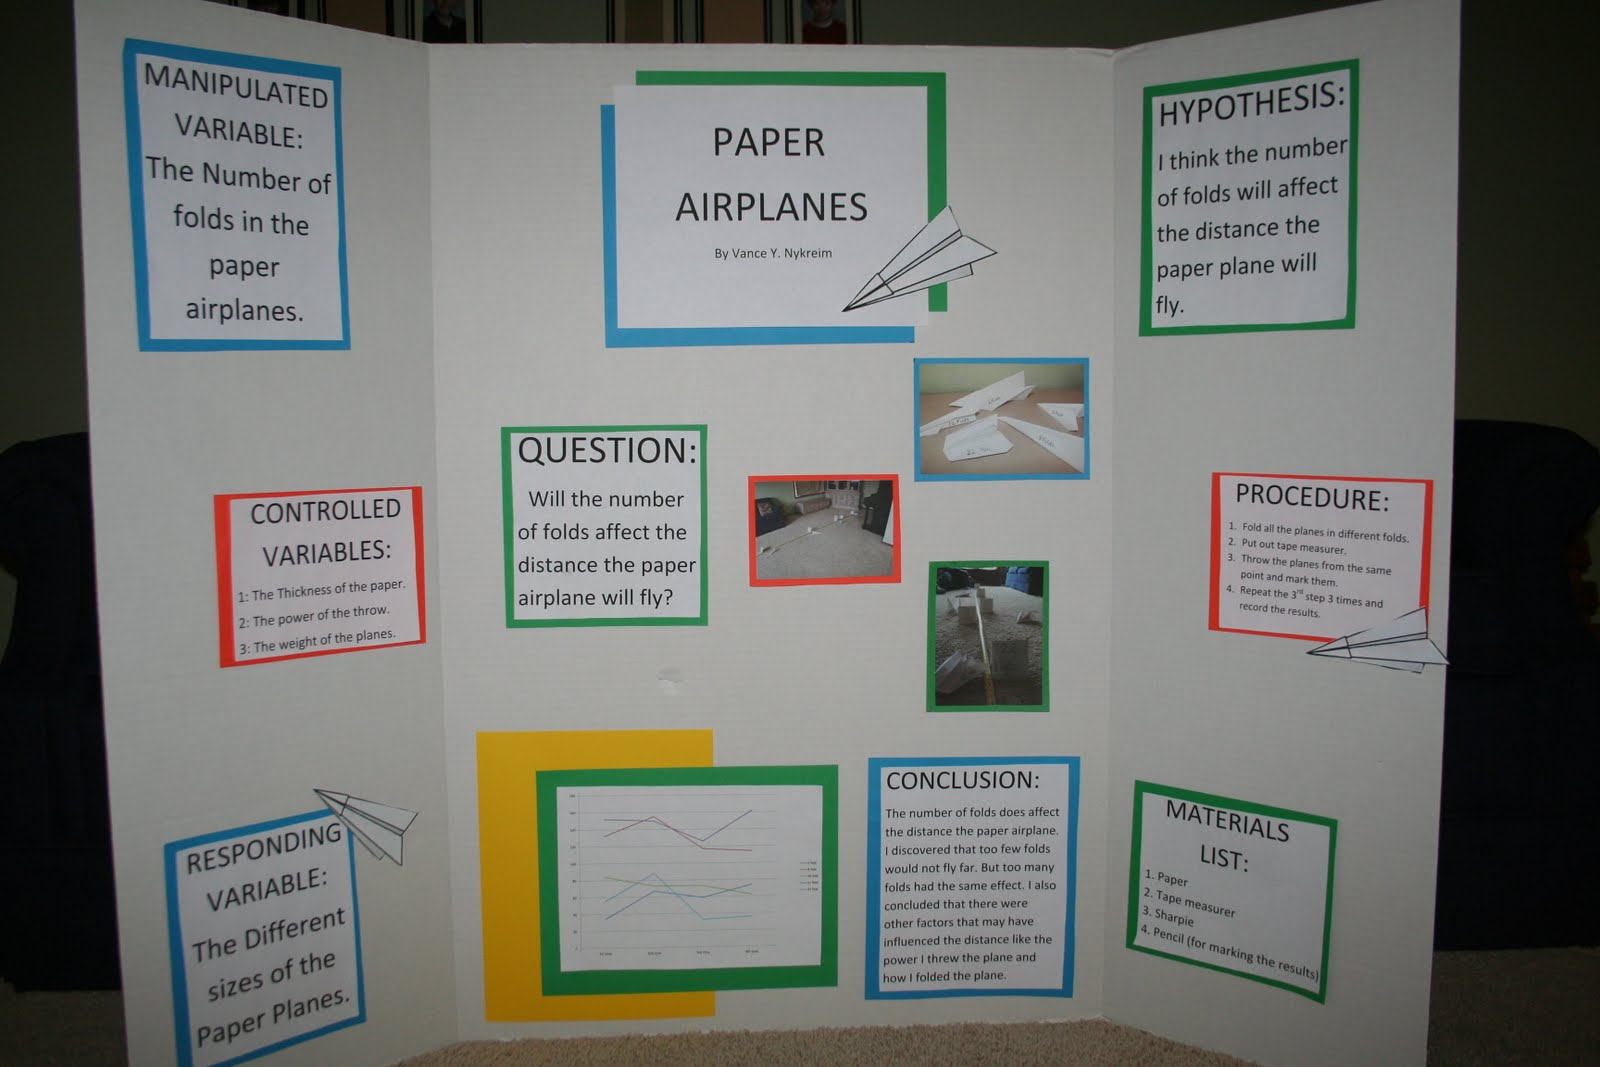 6th grade science fair project